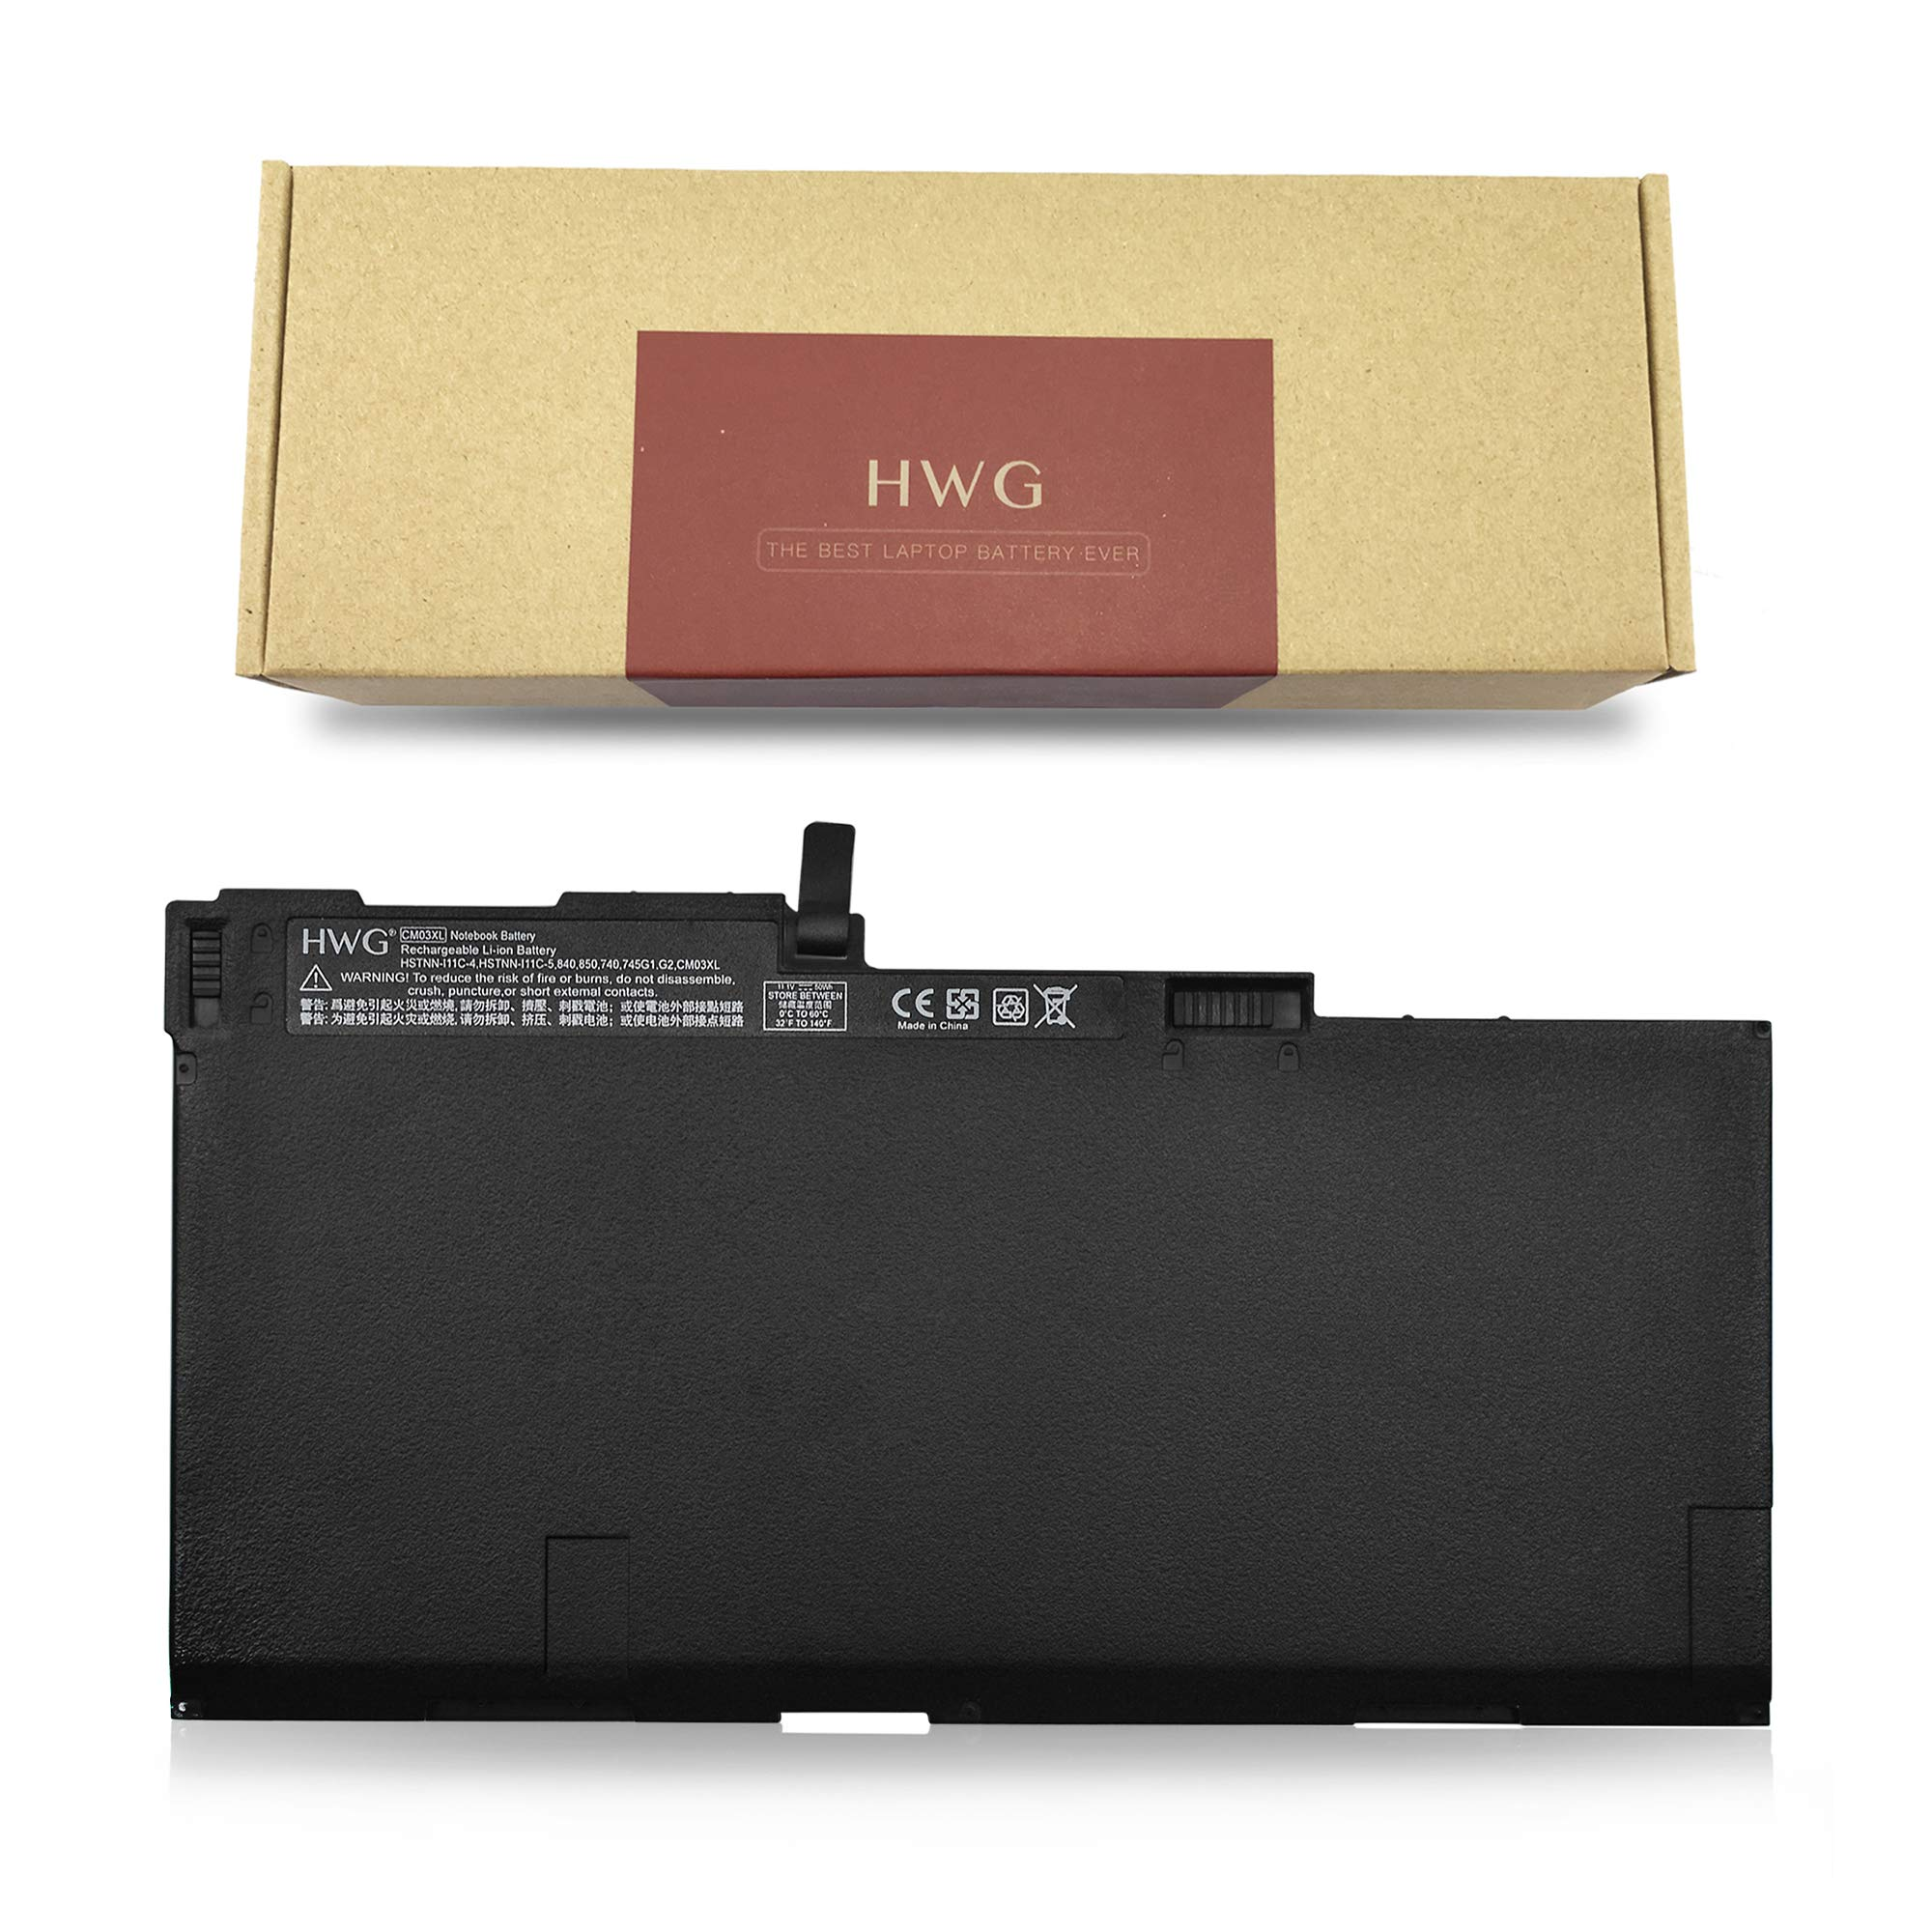 HWG CM03XL battery for HP EliteBook 840 845 850 740 745 750 G1 G2 Series 717376-001 CM03050XL CO06 CO06XL E7U24AA HSTNN-IB4R HSTNN-DB4Q HSTNN-LB4R HP ZBook 14 [11.1V / 50WH]